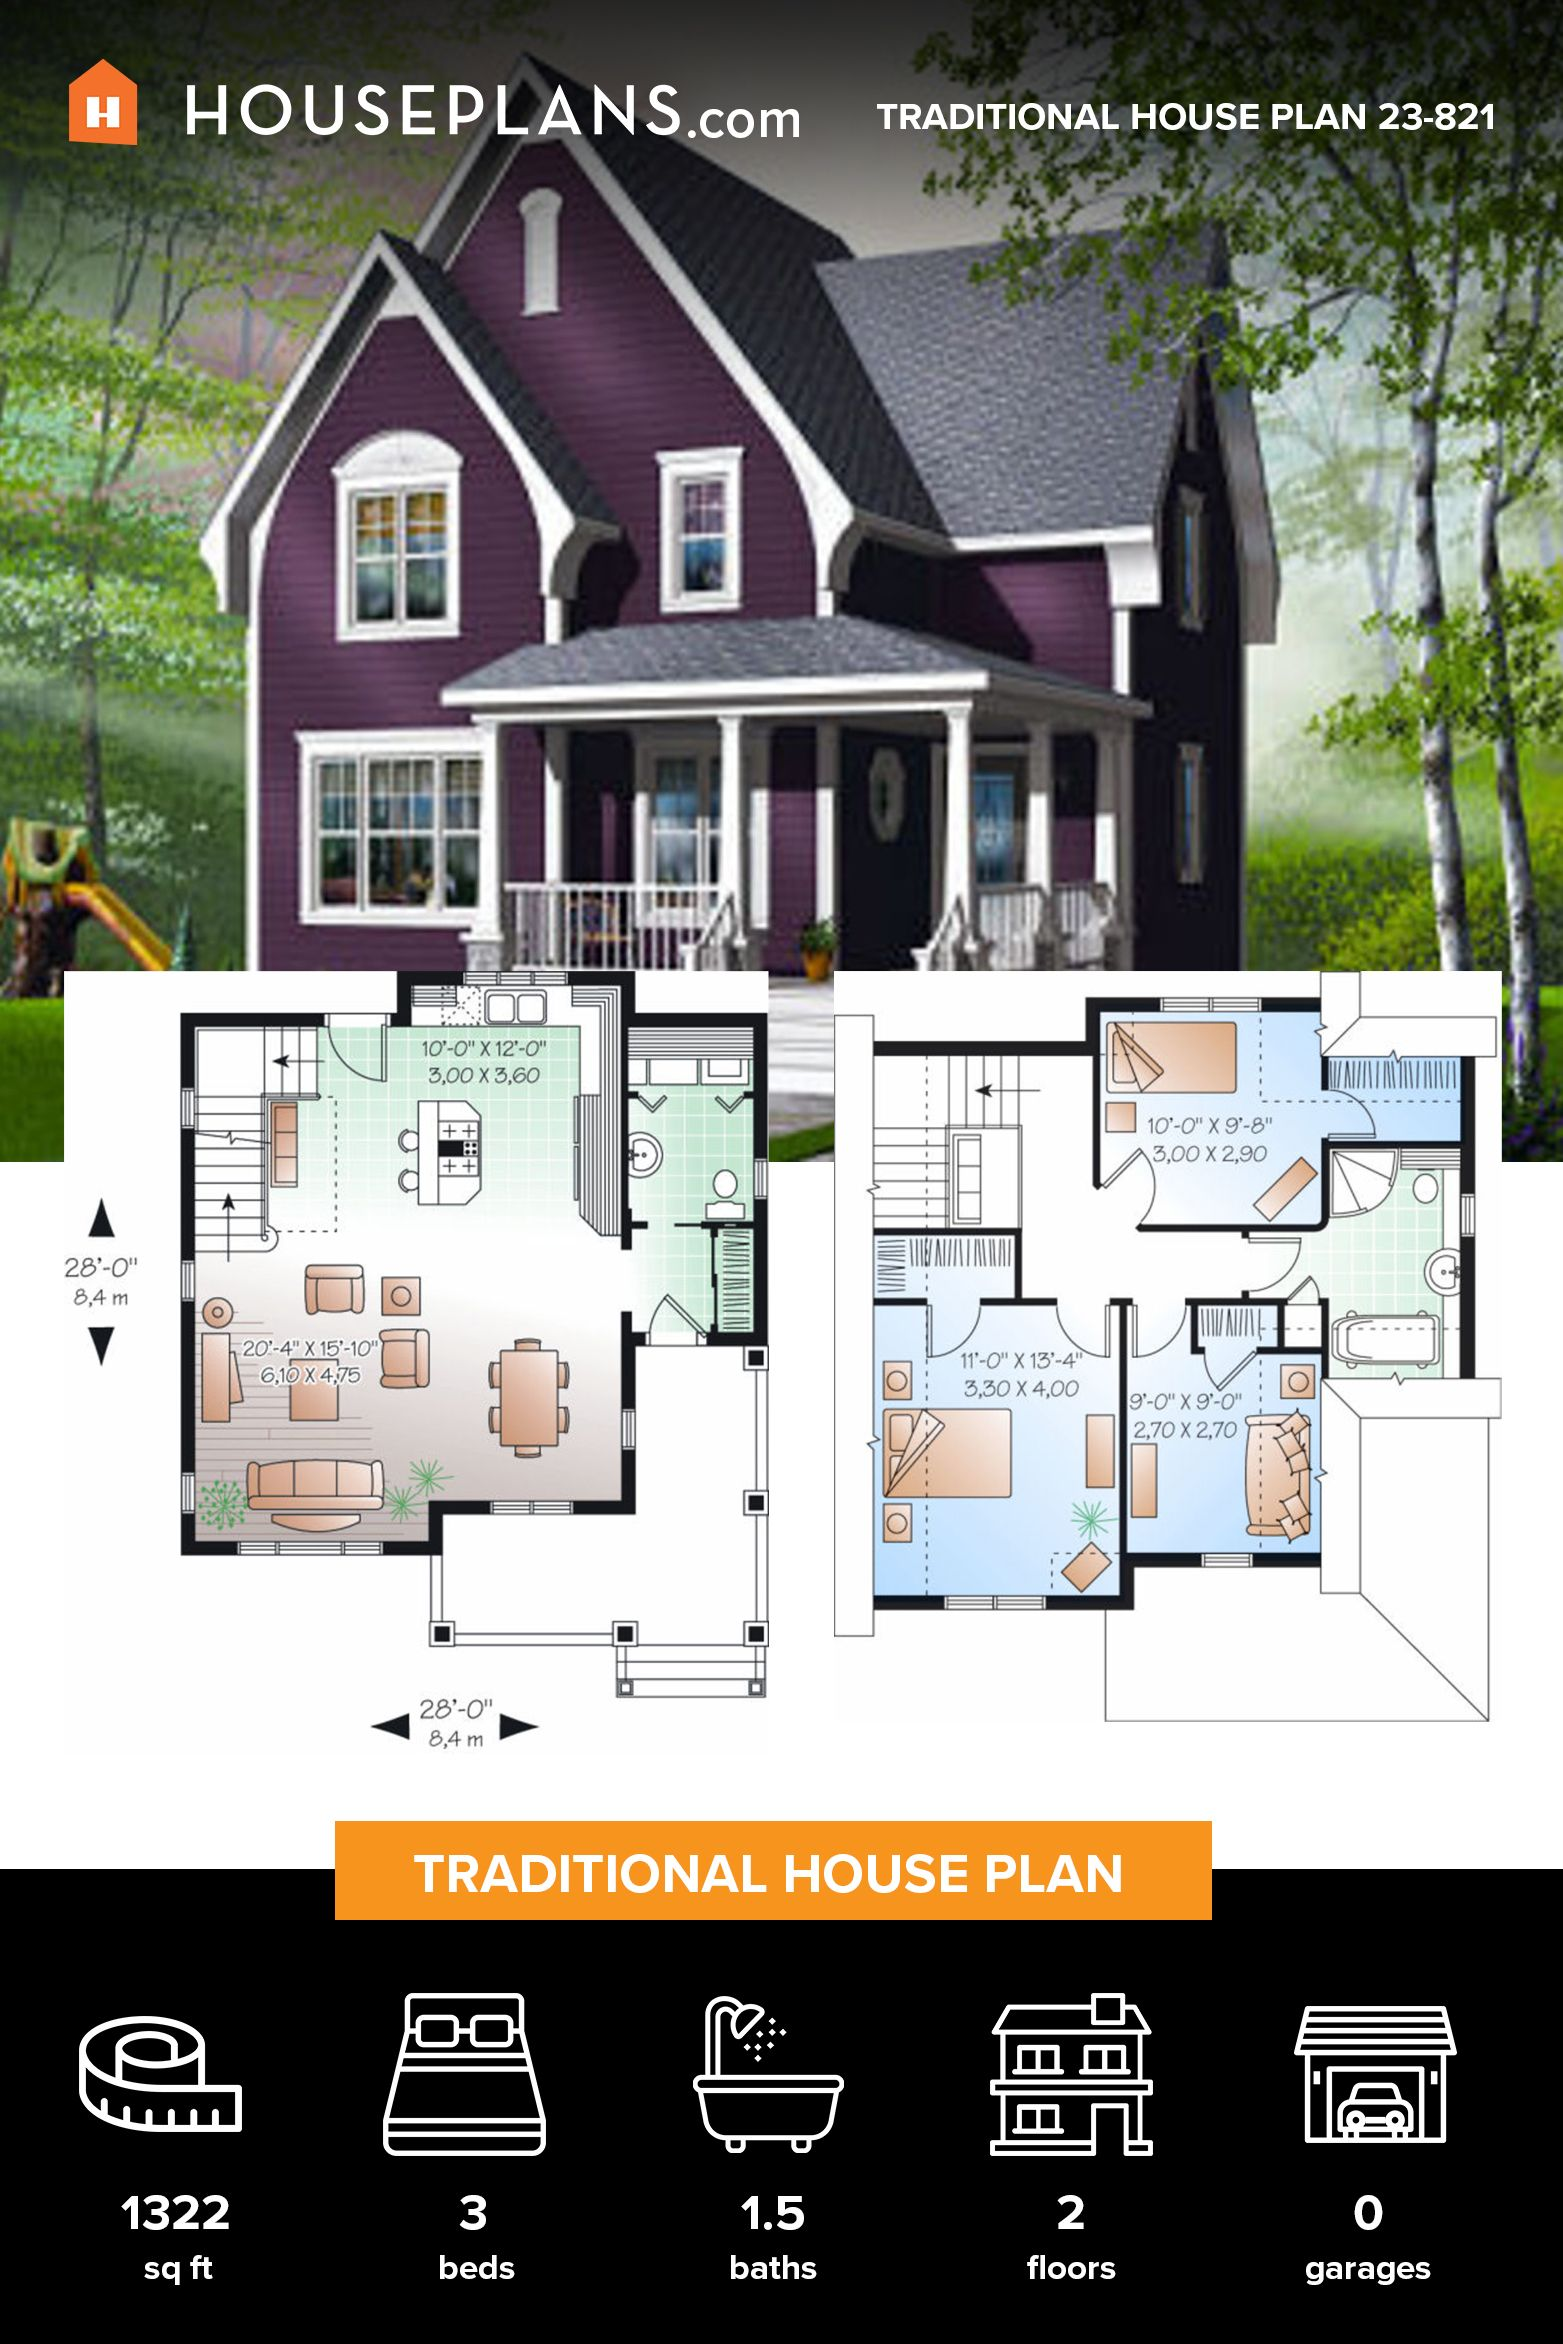 Traditional Style House Plan 3 Beds 1 5 Baths 1322 Sq Ft Plan 23 821 House Plans Small House Design Plans Traditional House Plan